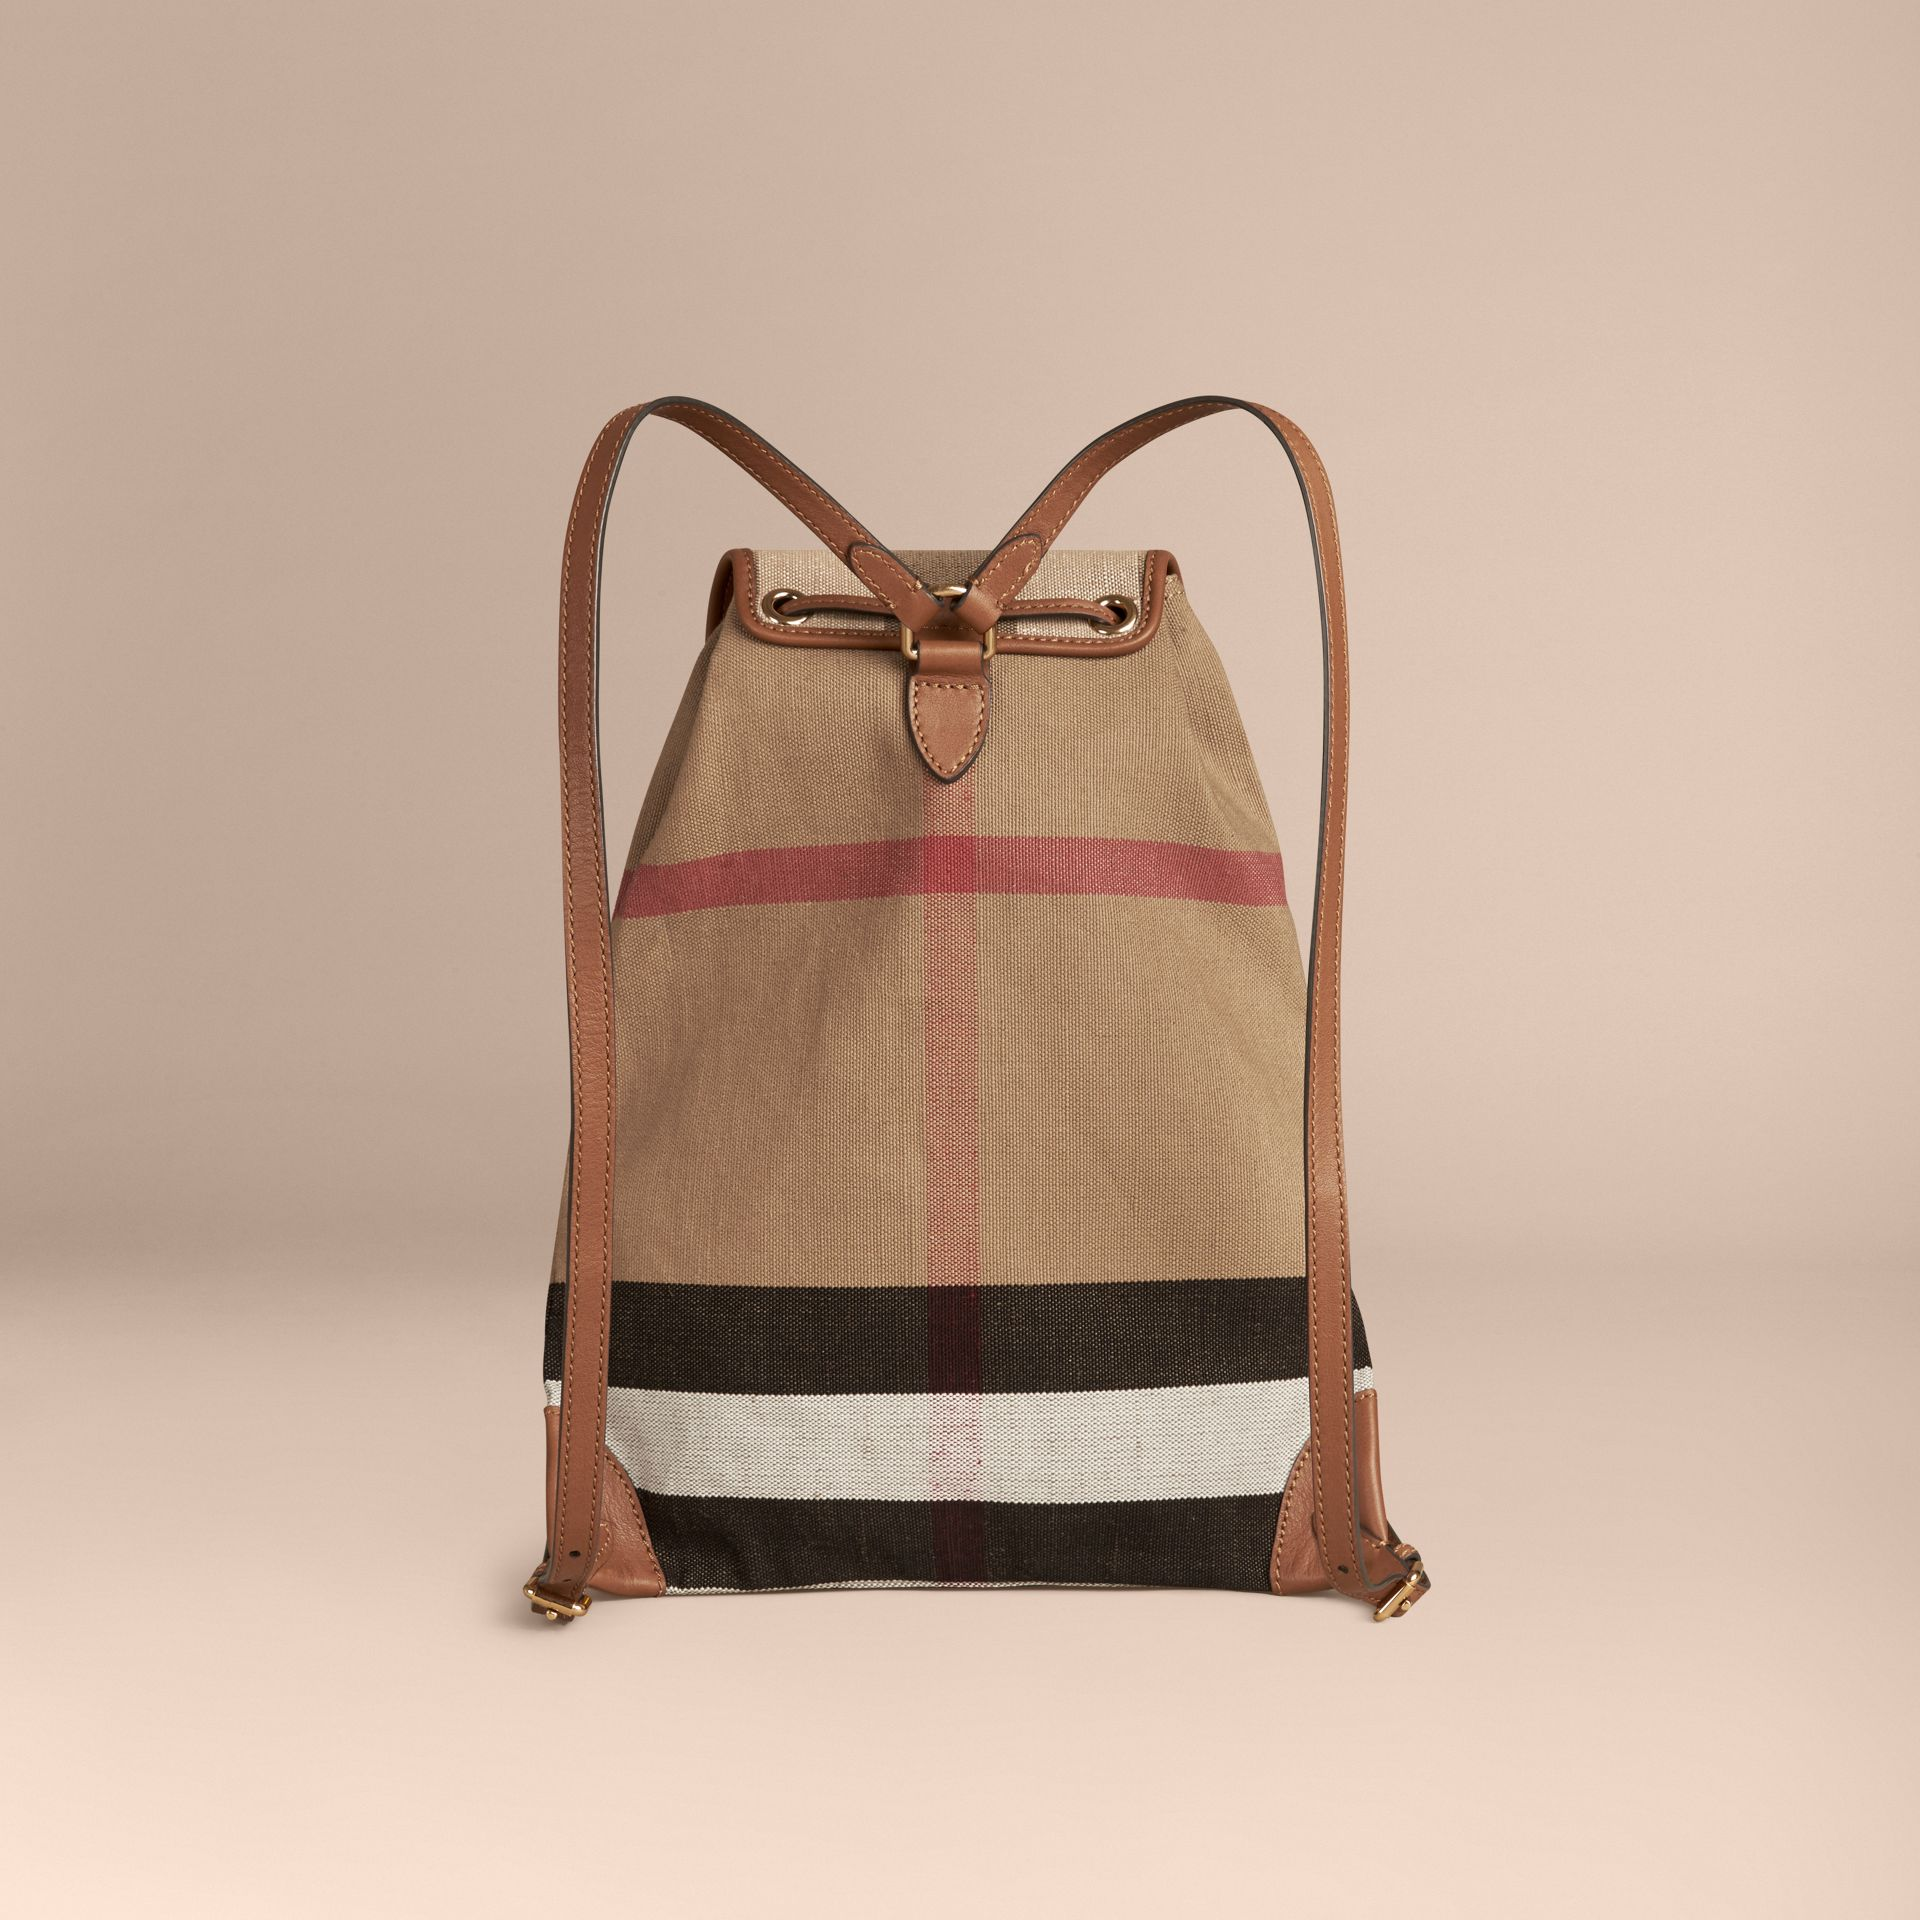 Tan Canvas Check Backpack with Leather Trim Tan - gallery image 2